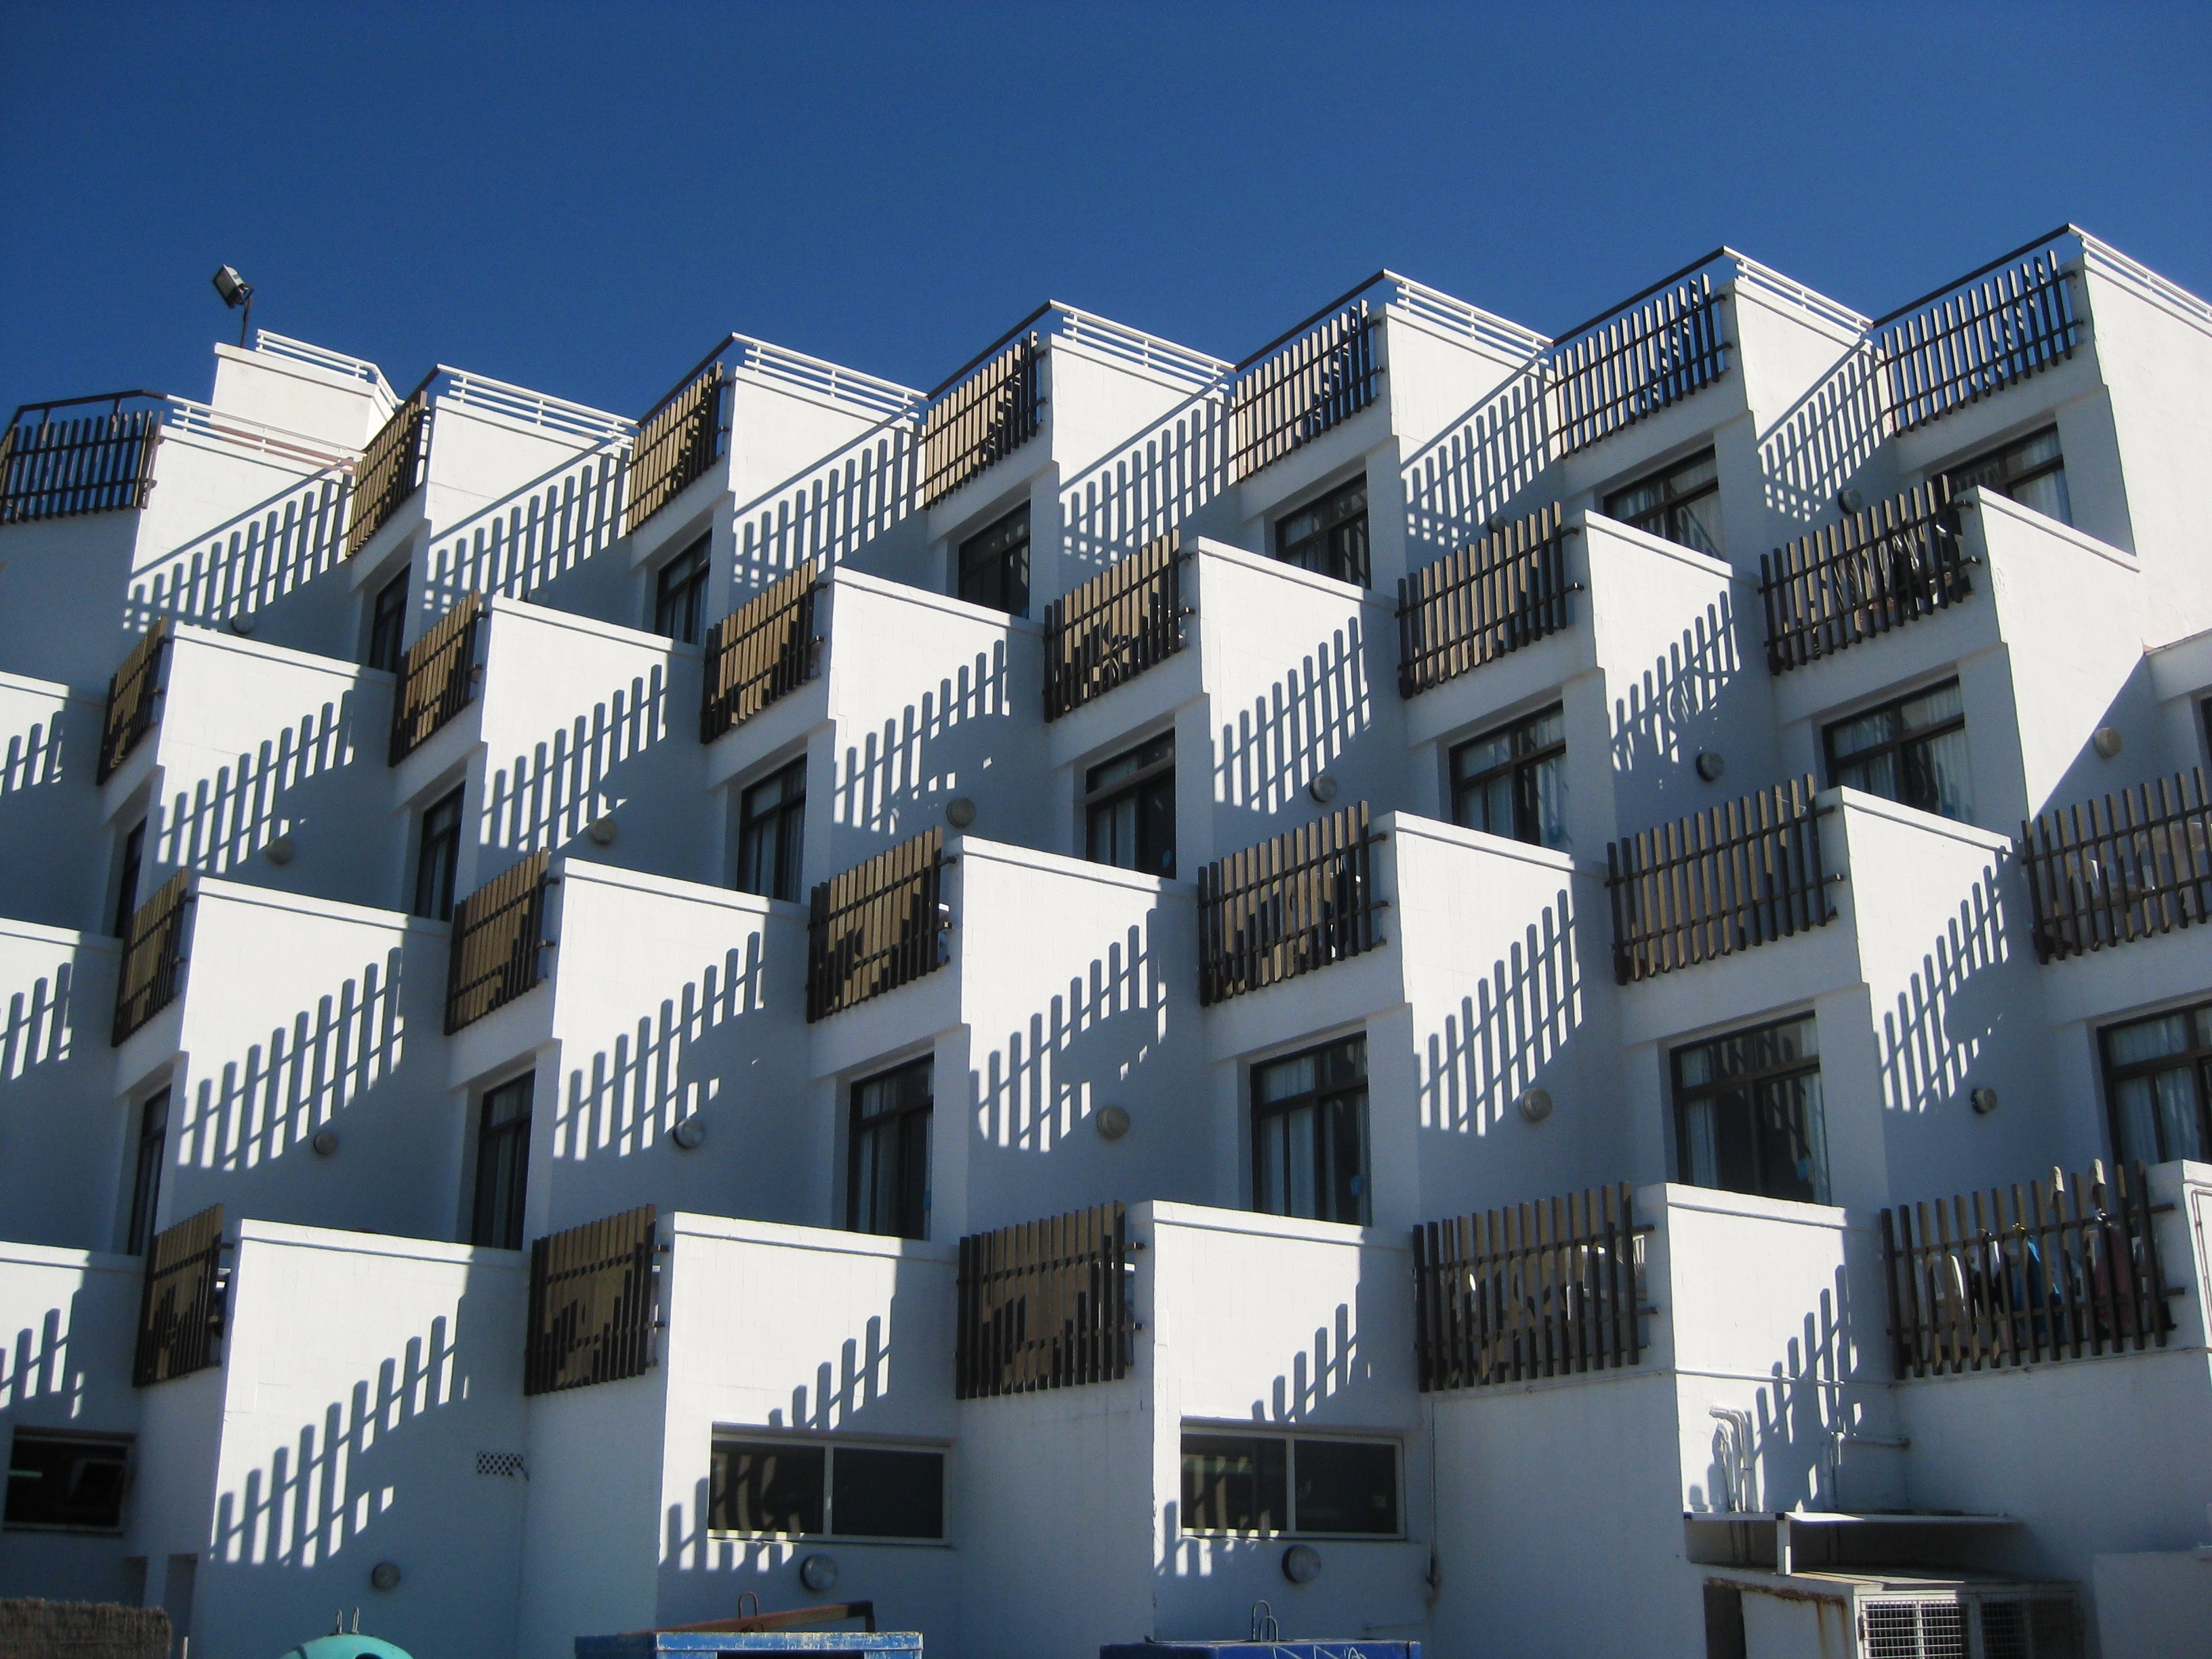 Regular rows of small terraces in a white residential building